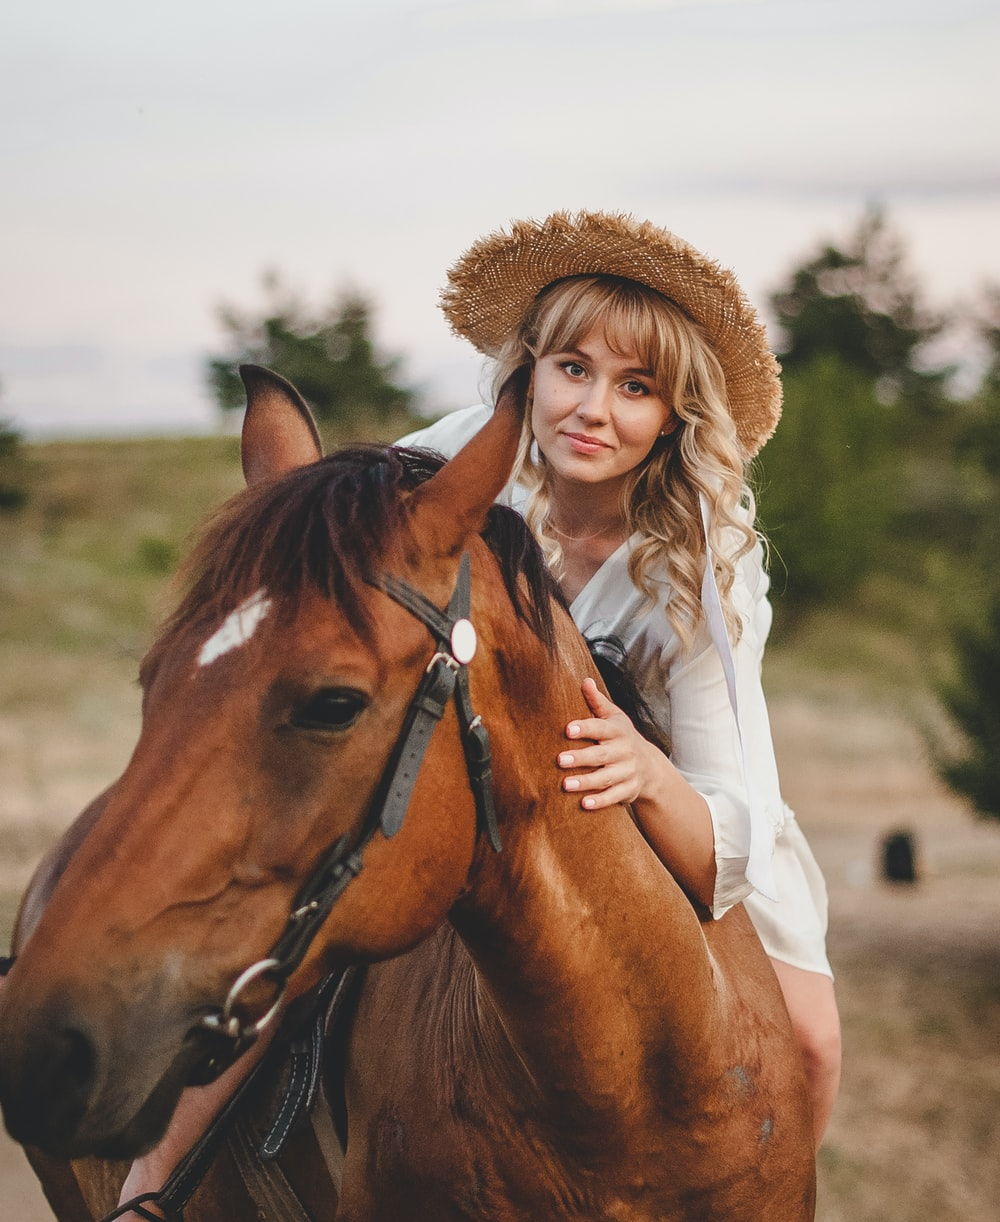 woman in white long sleeve shirt and brown hat standing beside brown horse during daytime